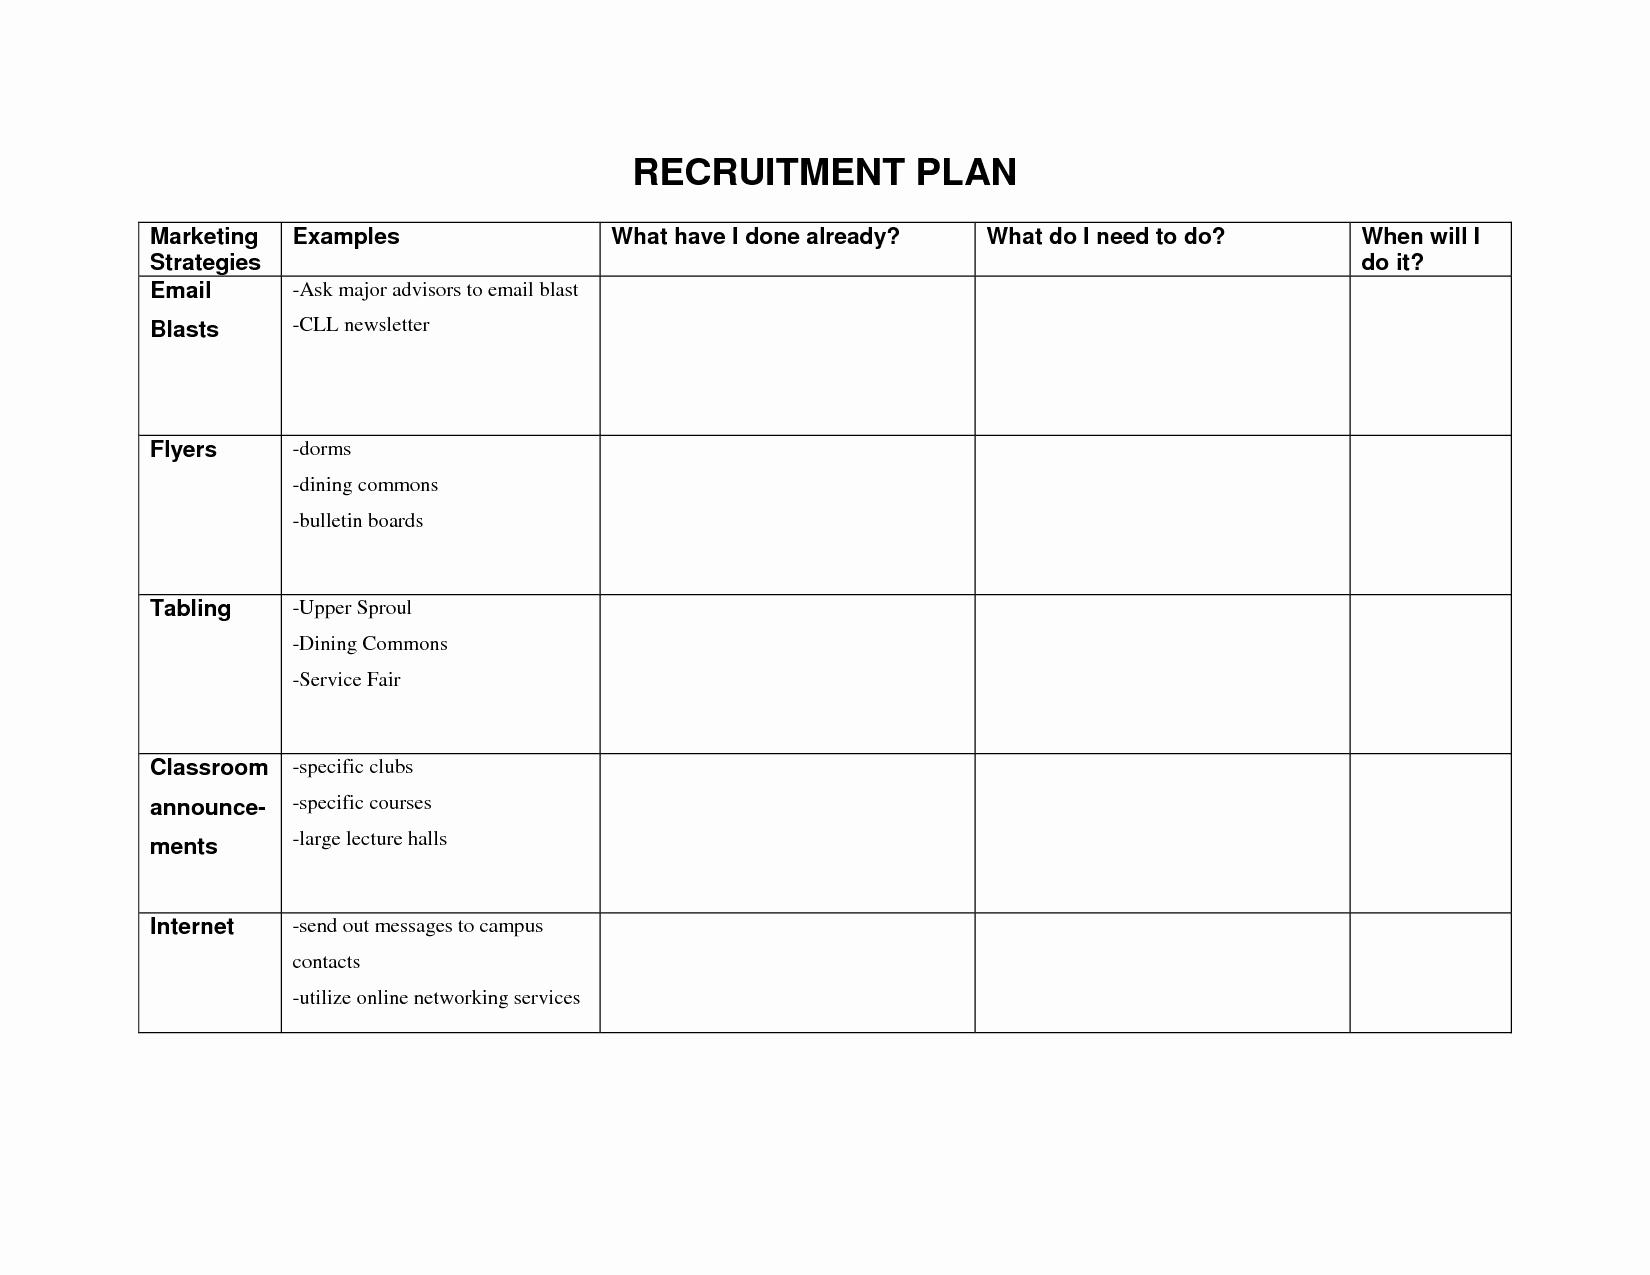 Recruitment Strategic Plan Template Awesome Recruitment forms and Templates Recruiter forms